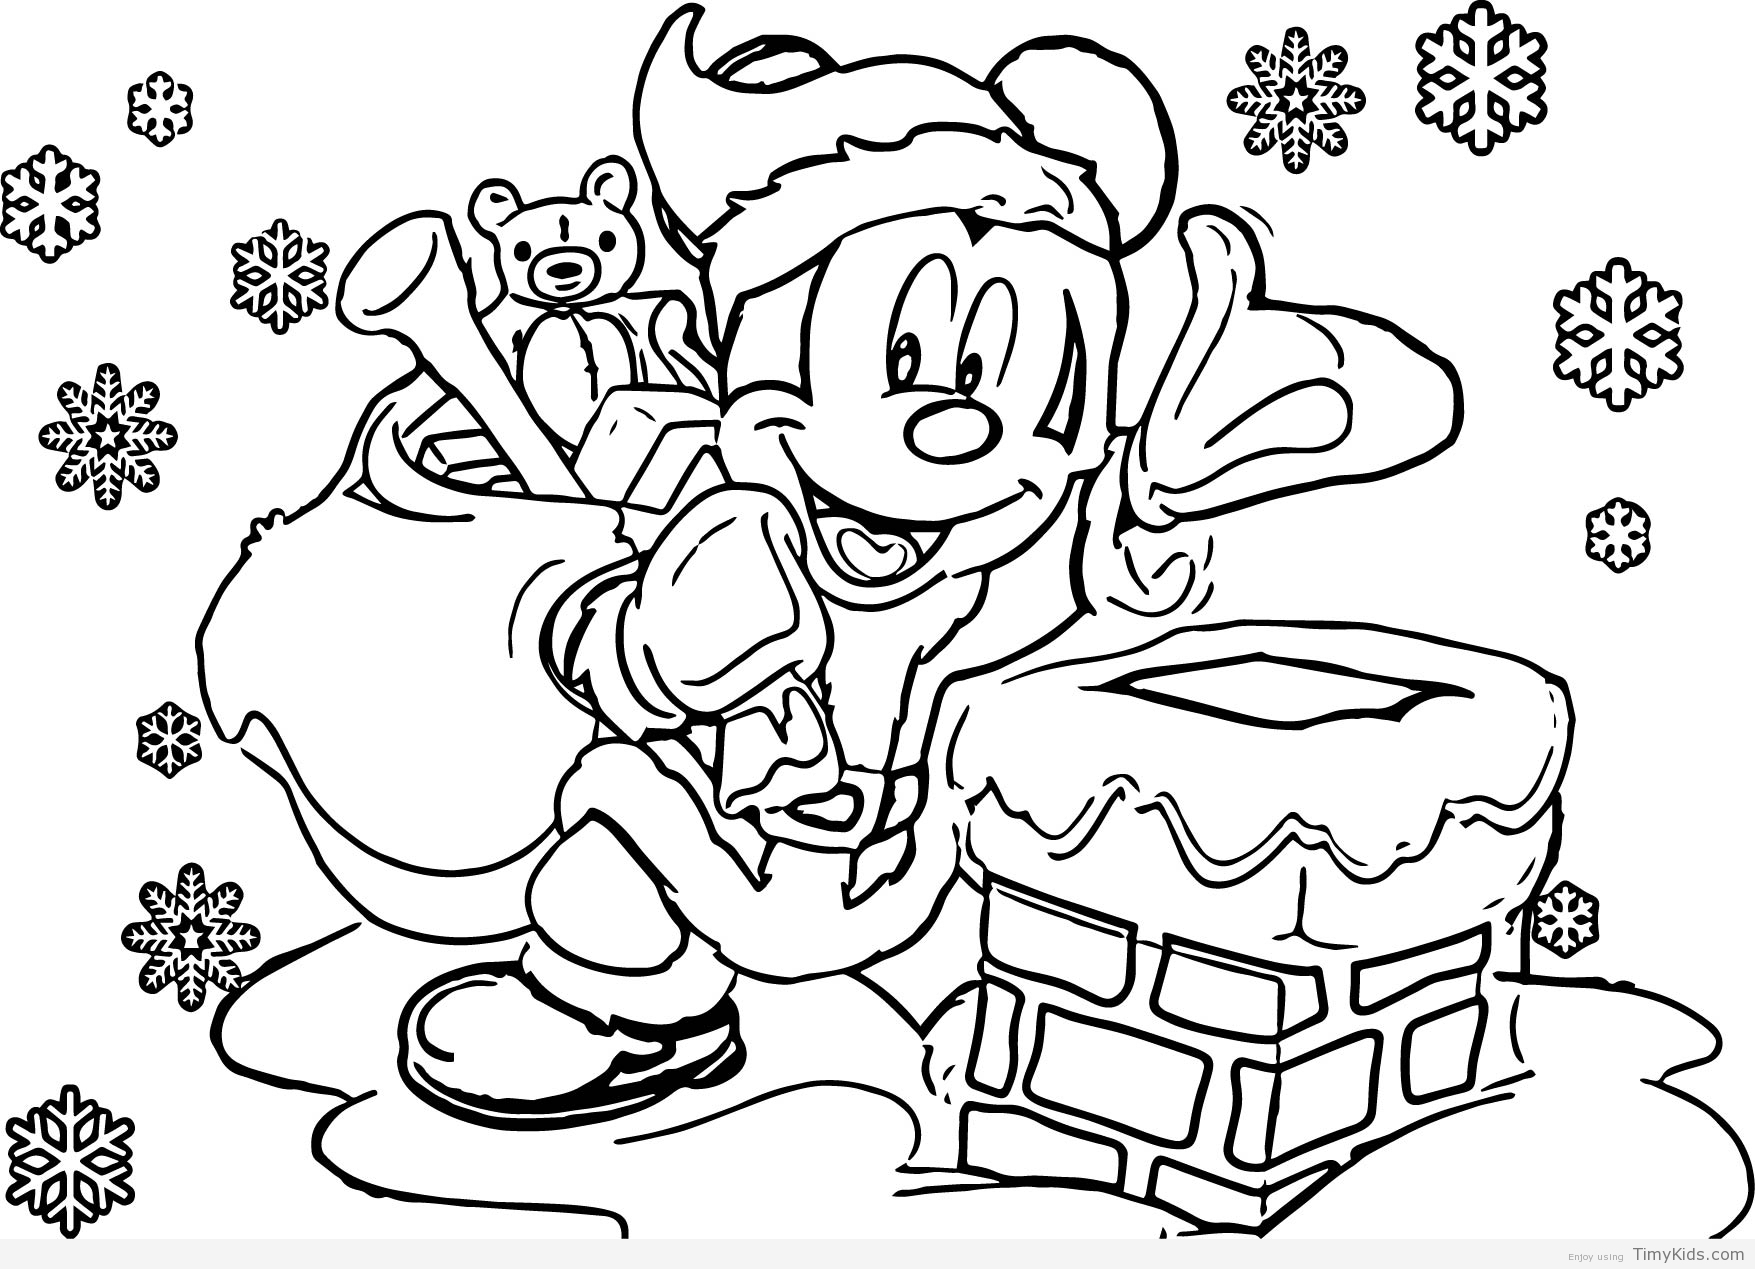 Free Disney Christmas Coloring Pages With Minion To Print Books